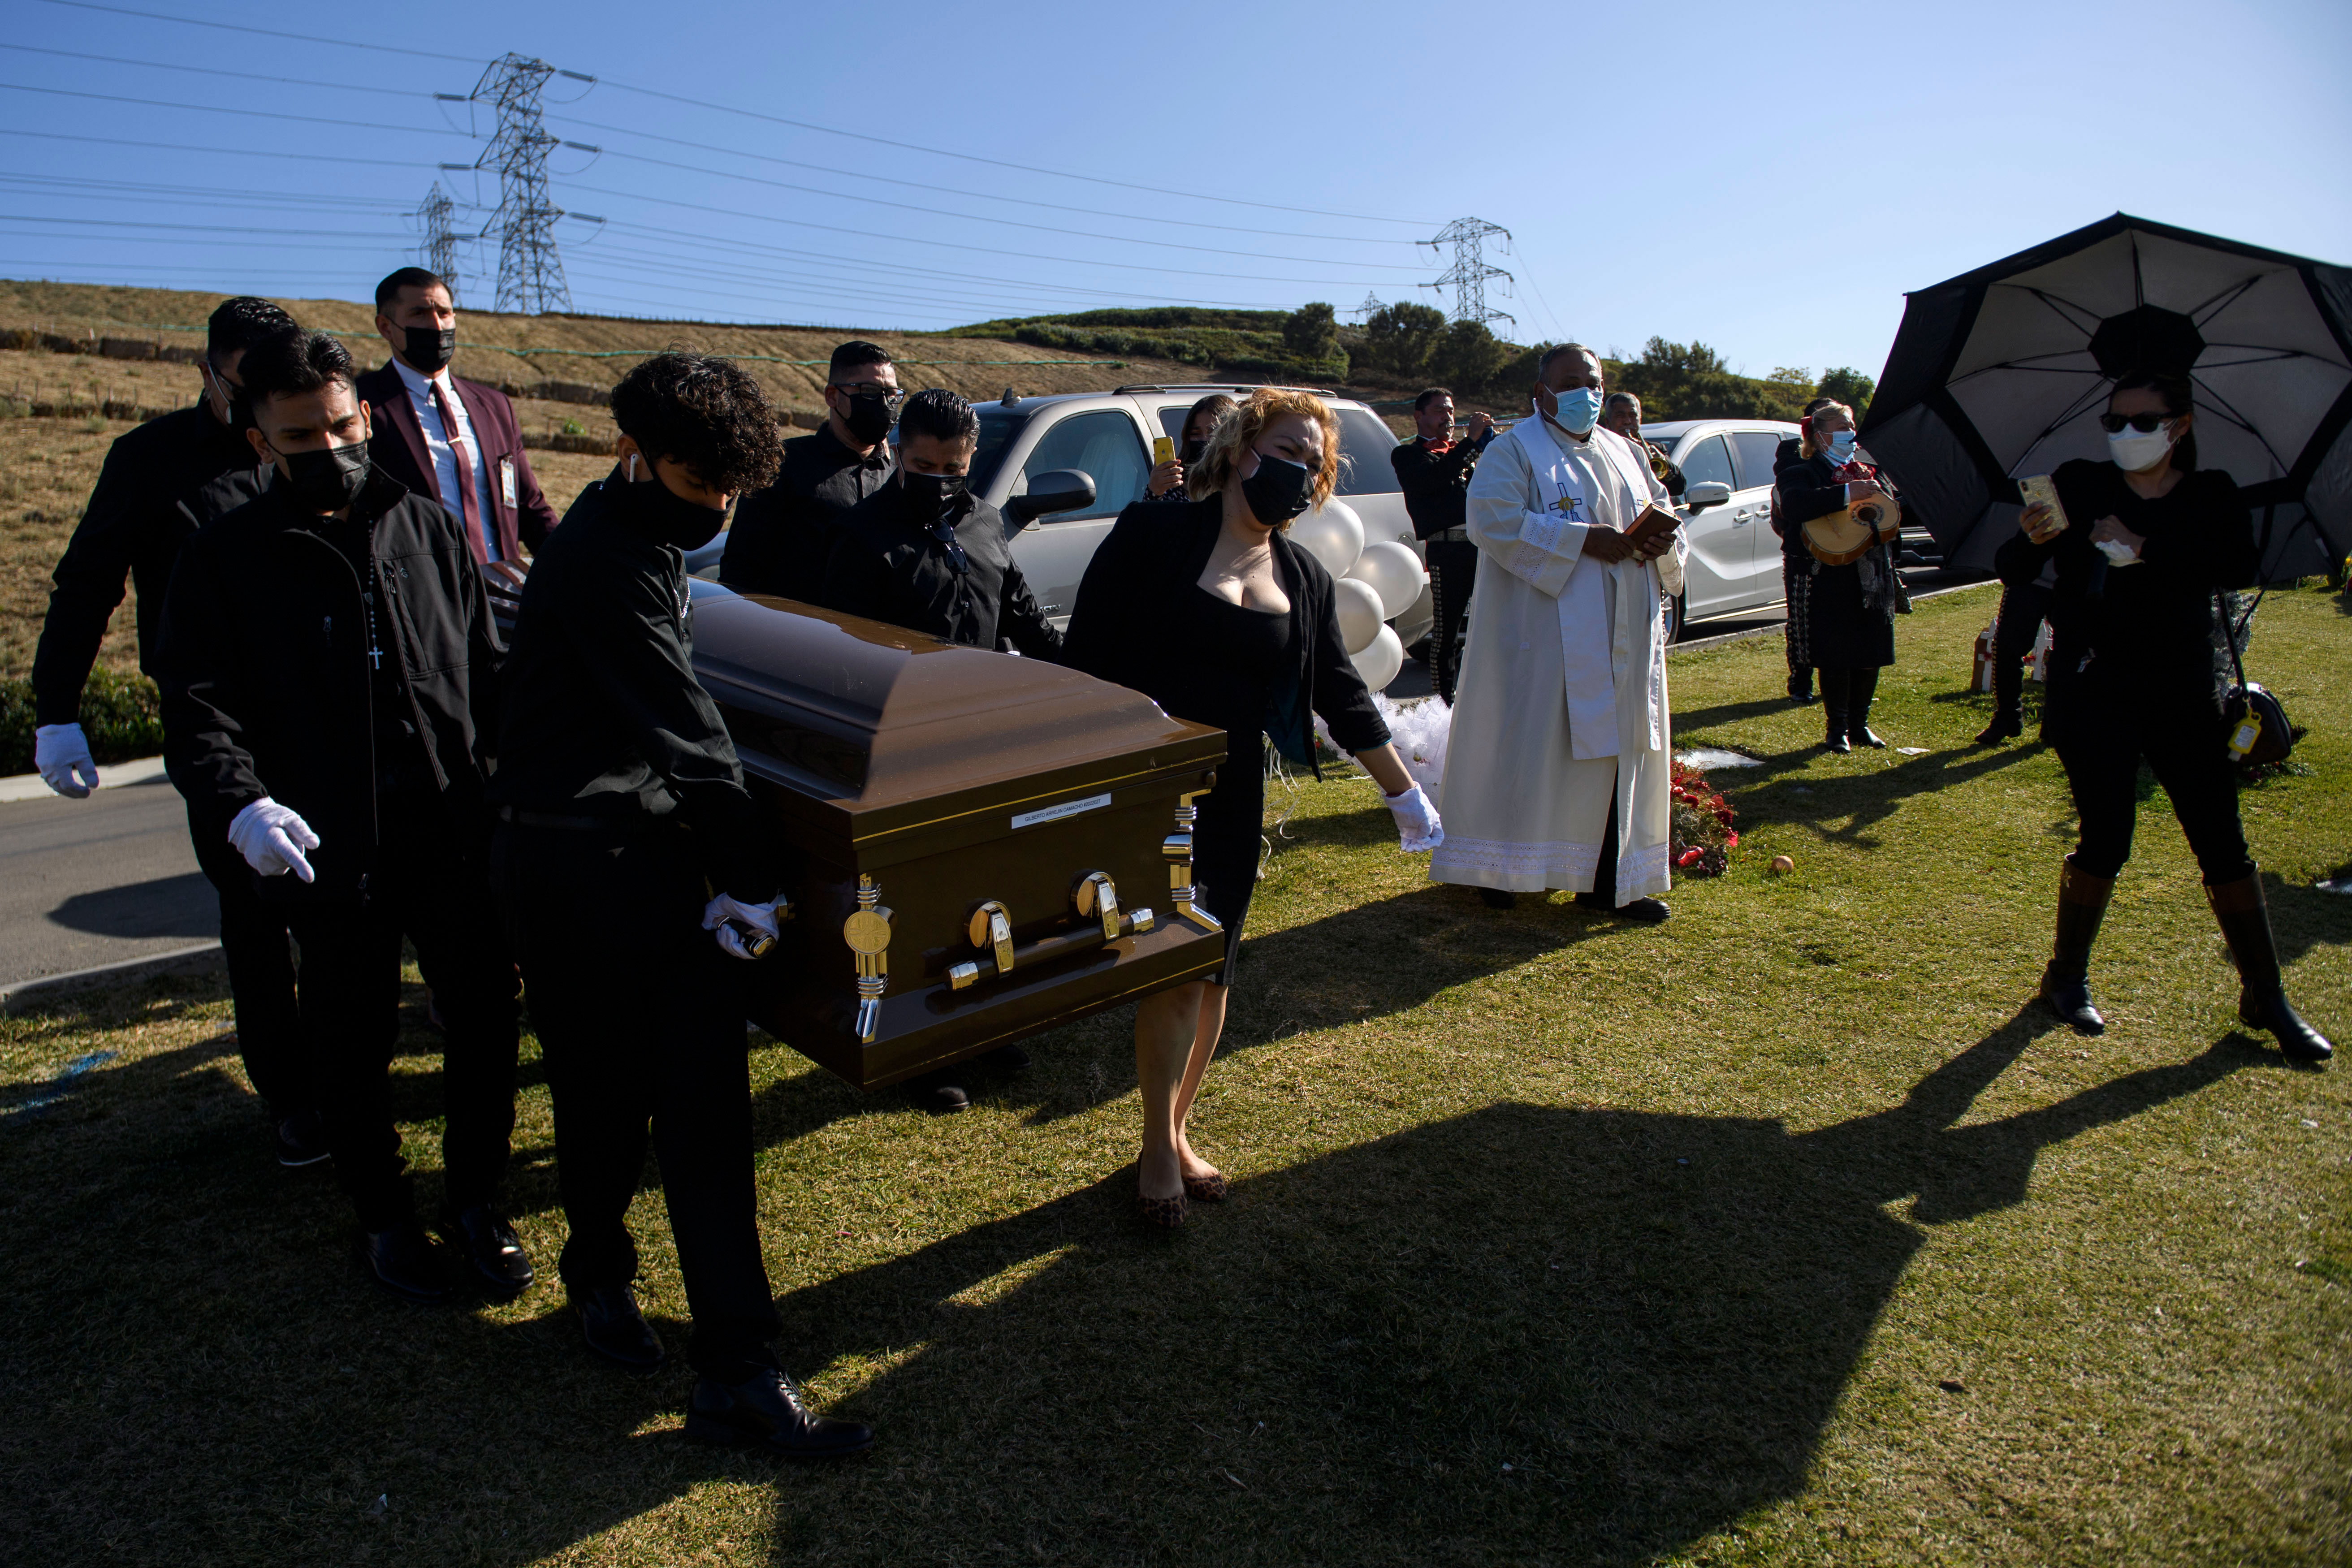 Pallbearers carry the casket of someone said to have died from Covid-19 during a burial service in Whittier, California, on December 31.